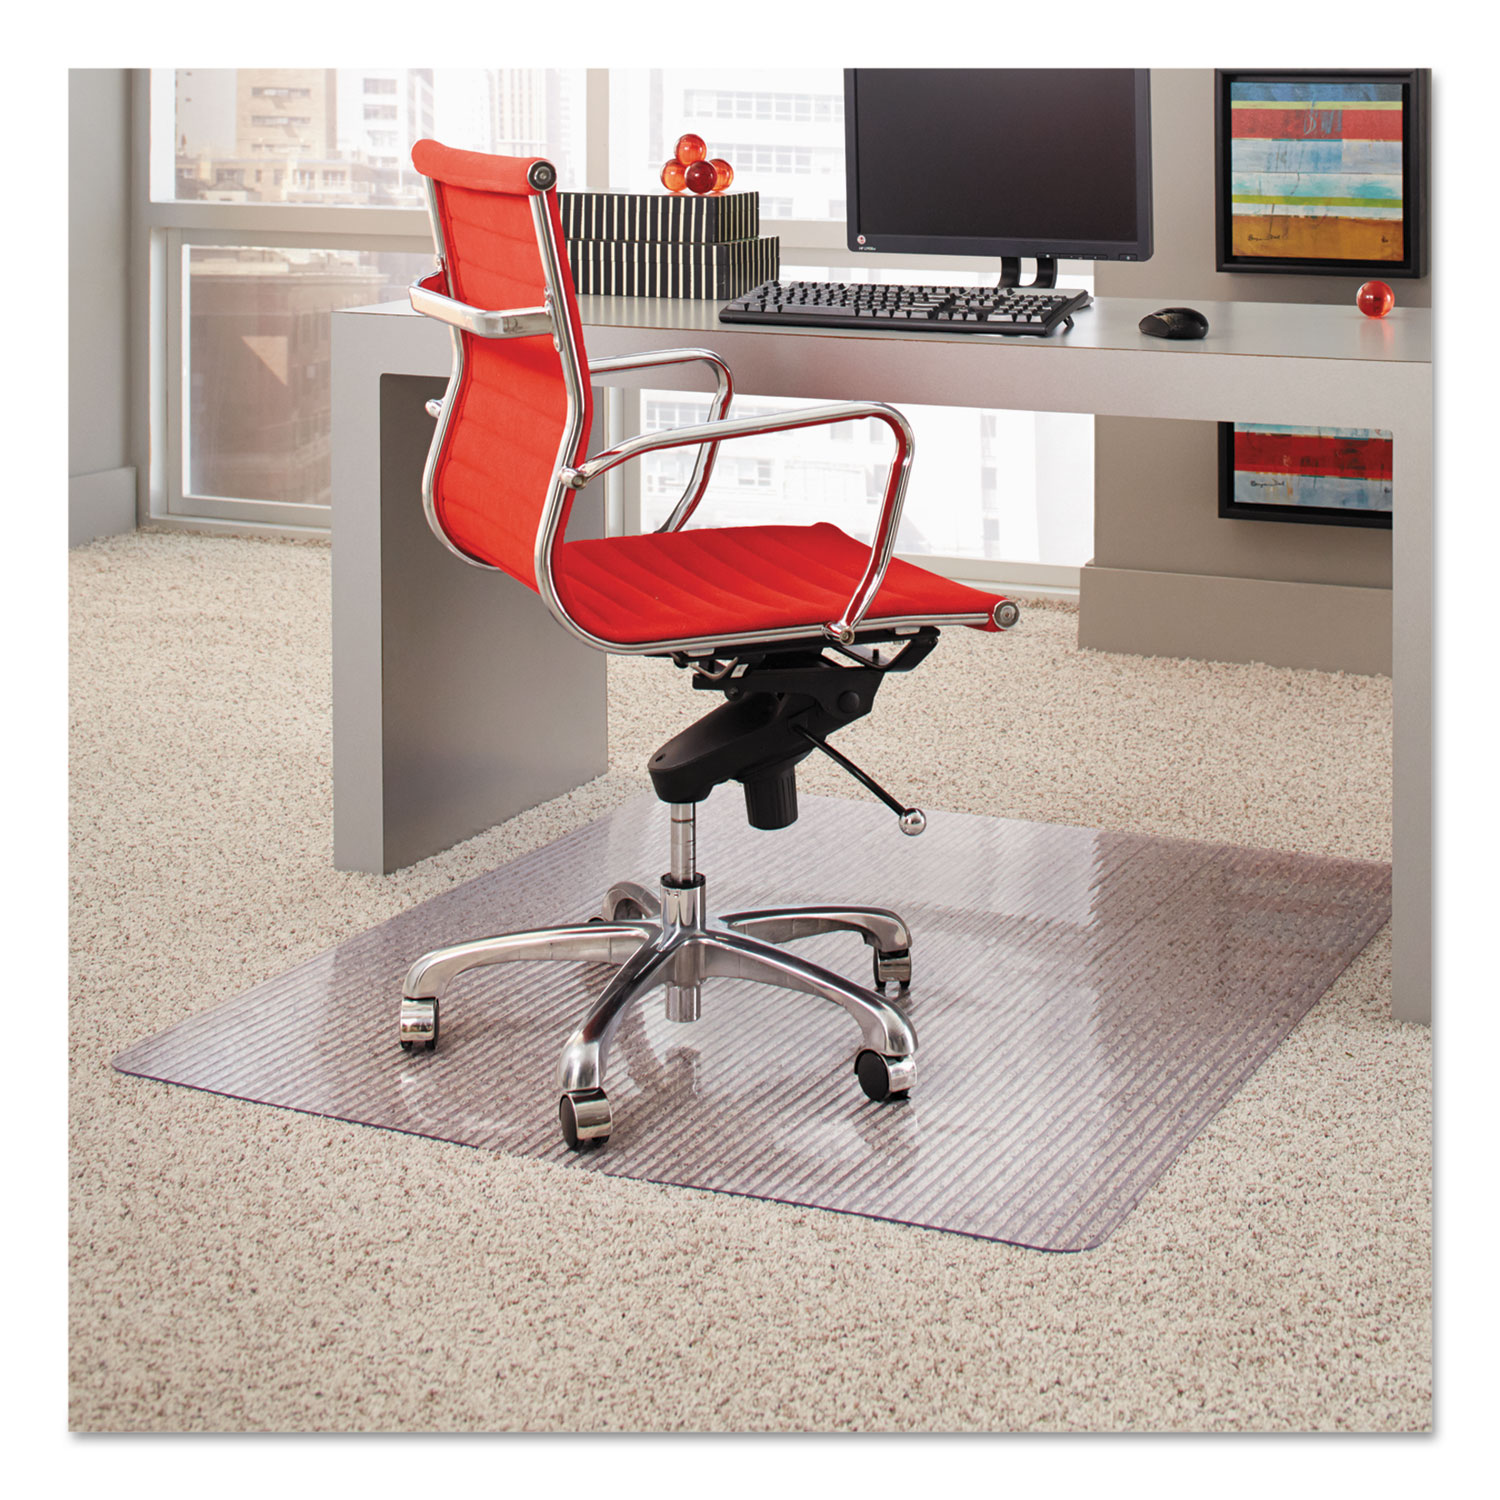 Dimensions Chair Mat For Carpet 45 X 53 Clear